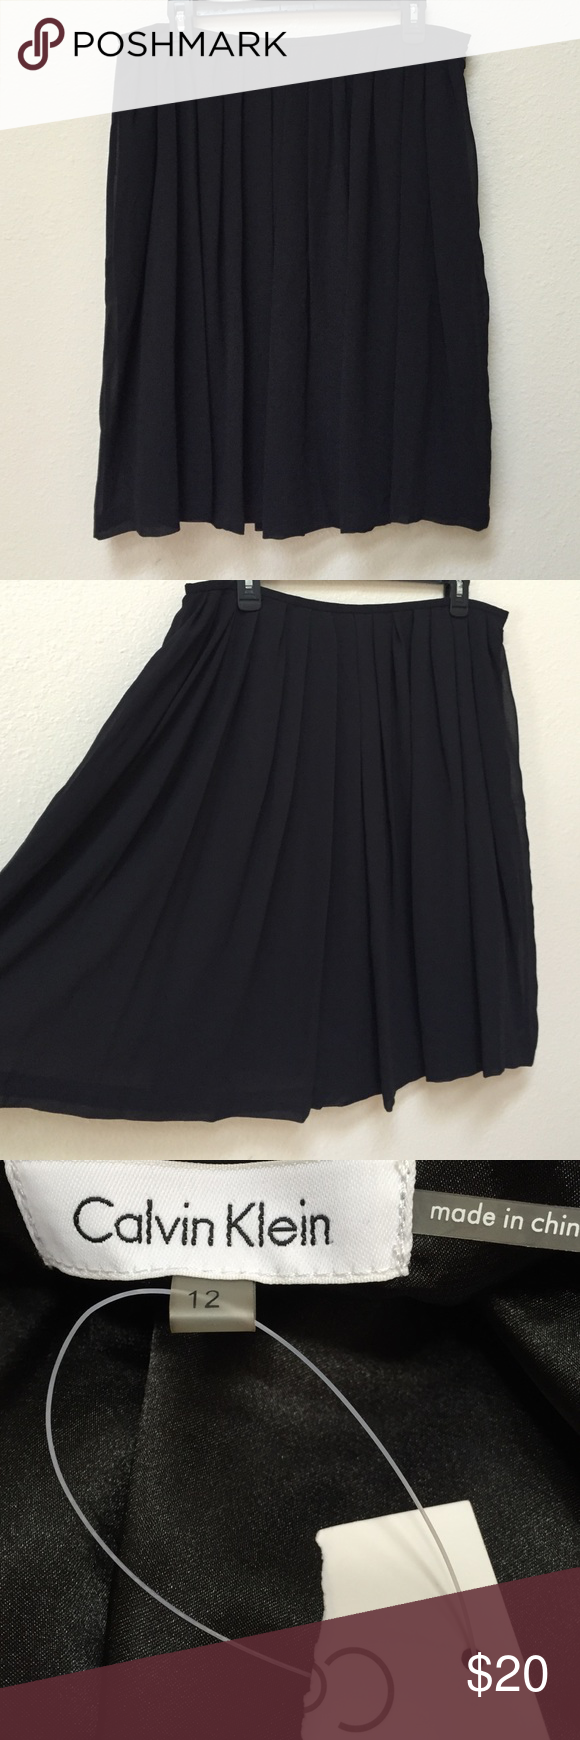 """Black NWT Calvin Klein pleated skirt This is a classic, black Calvin Klein pleated skirt. NWT. Size 12. The shell is made from 100% polyester and lining is 100% polyester. There is a zipper on one side. Length is approximately 23"""". Calvin Klein Skirts"""